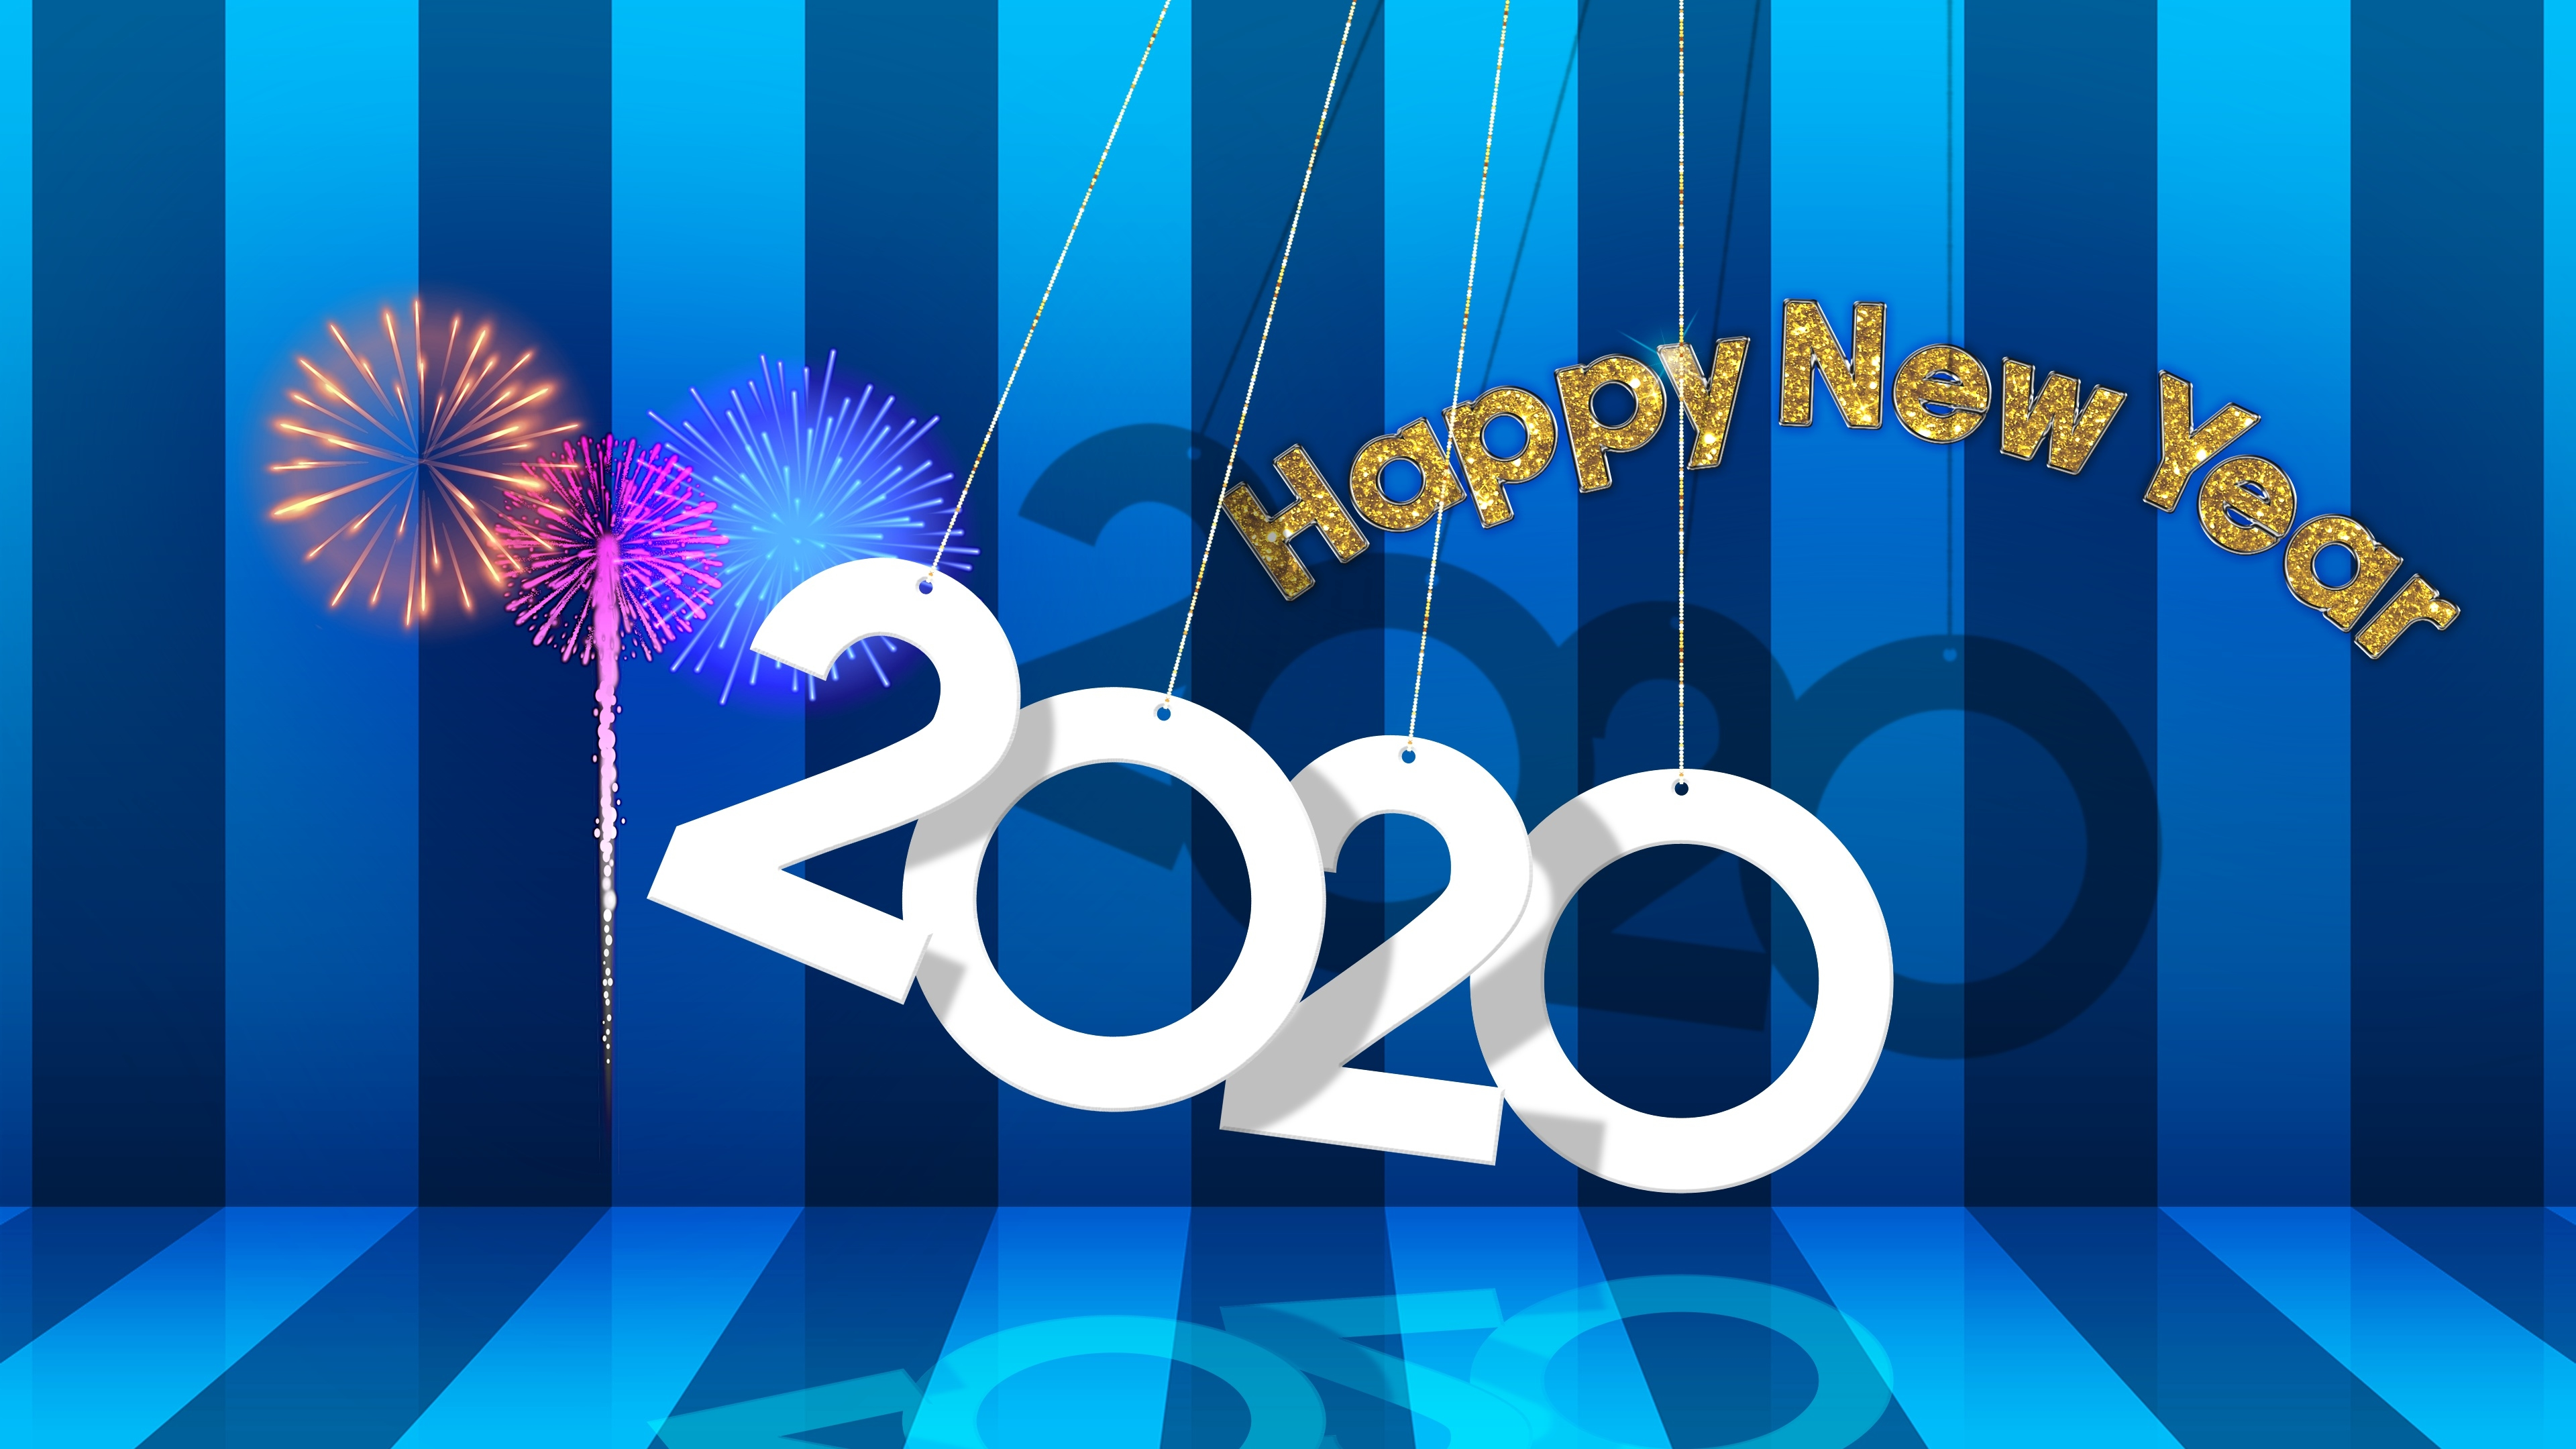 New Year 2020 Wallpaper, HD Other 4K Wallpapers, Images ...